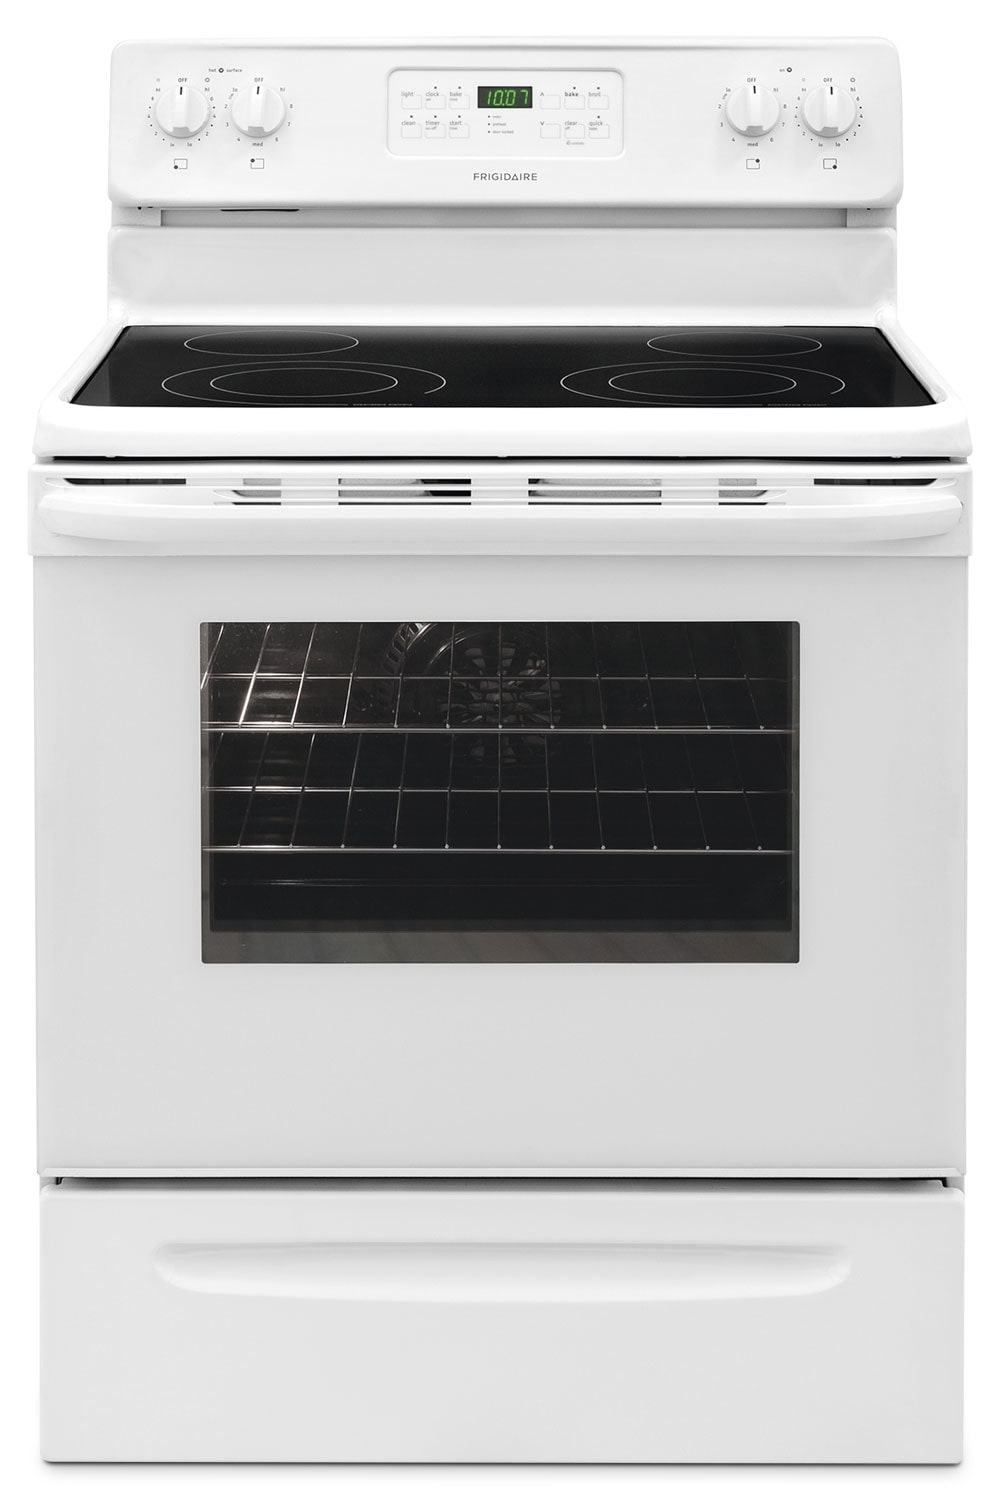 Frigidaire 5.4 Cu. Ft. Self-Clean Freestanding Range - White